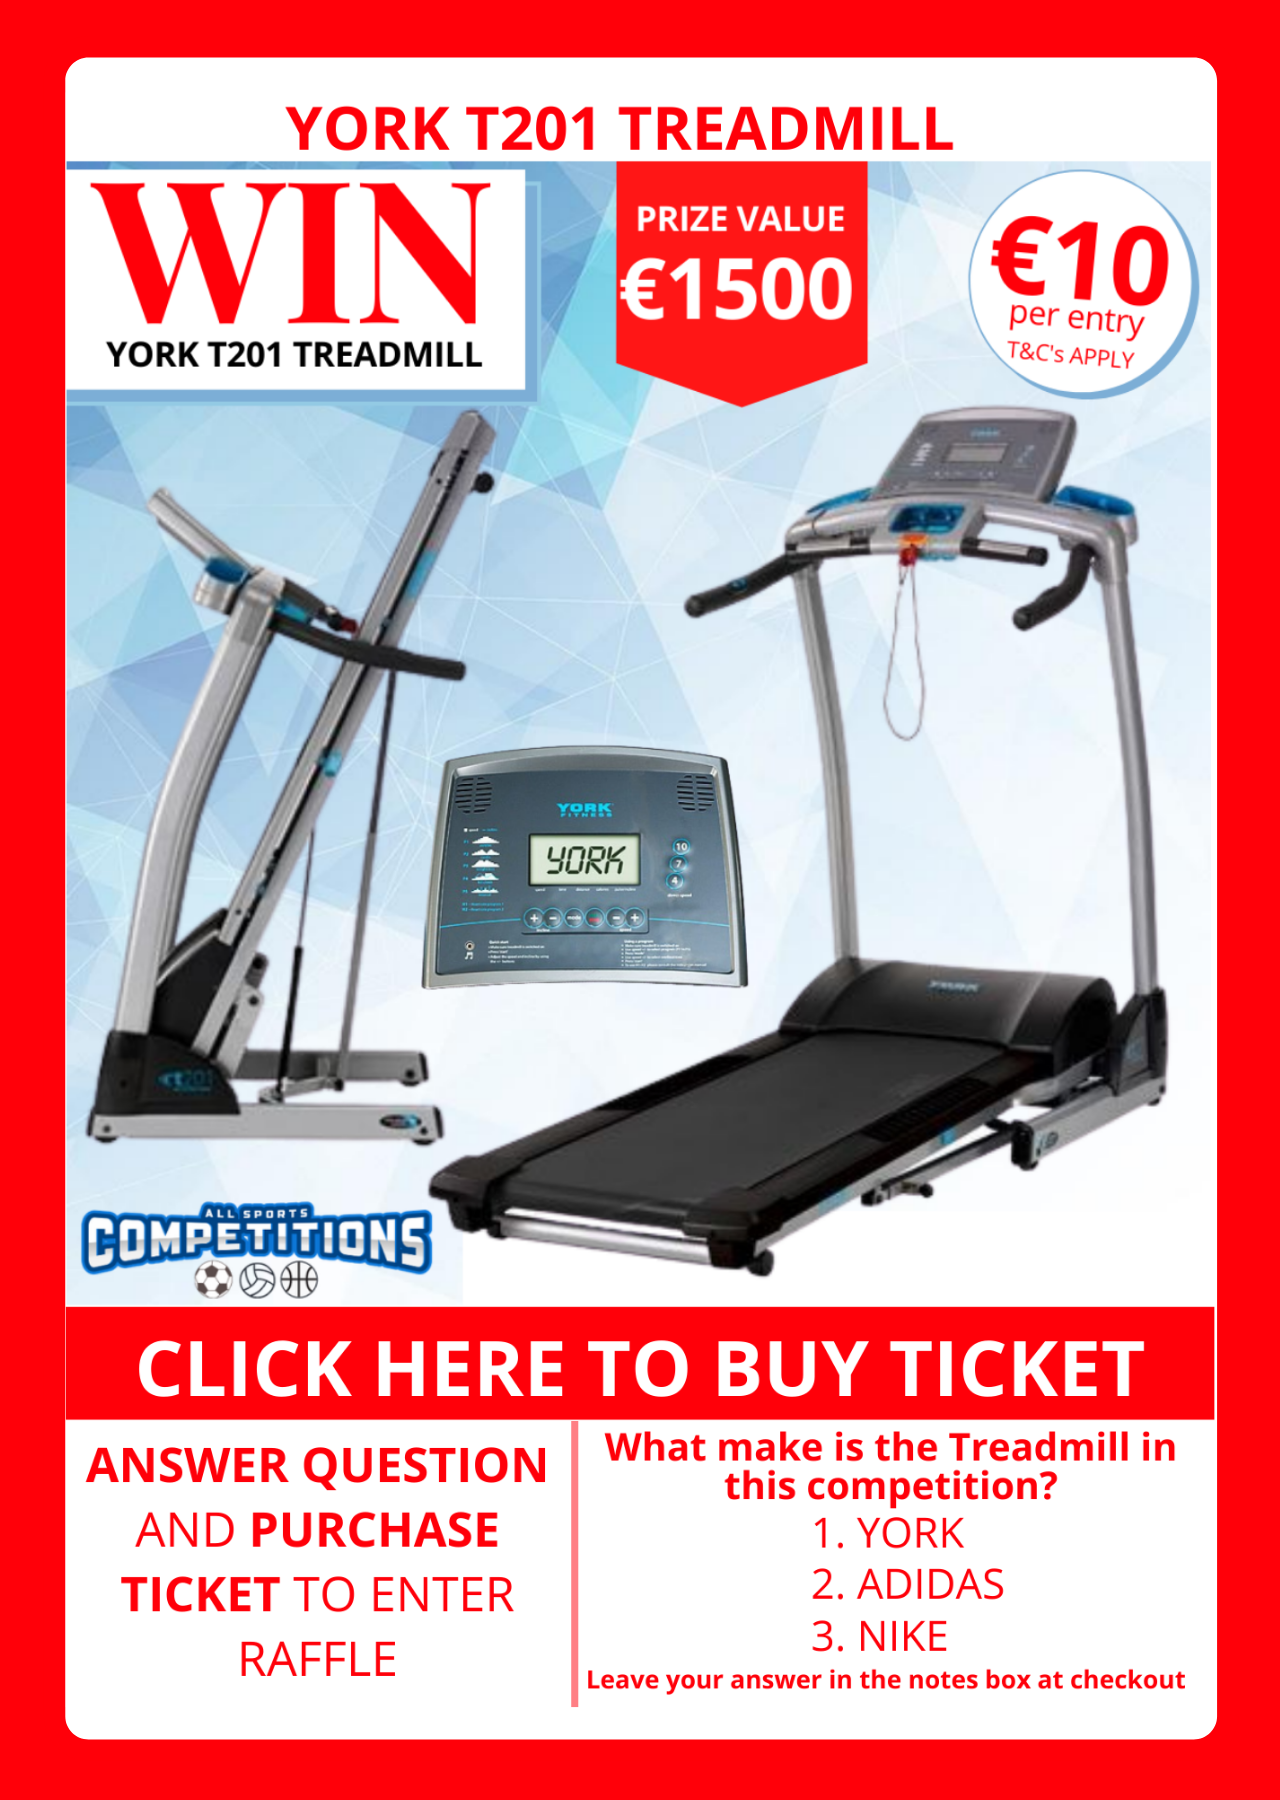 Win a Treadmill for only €10